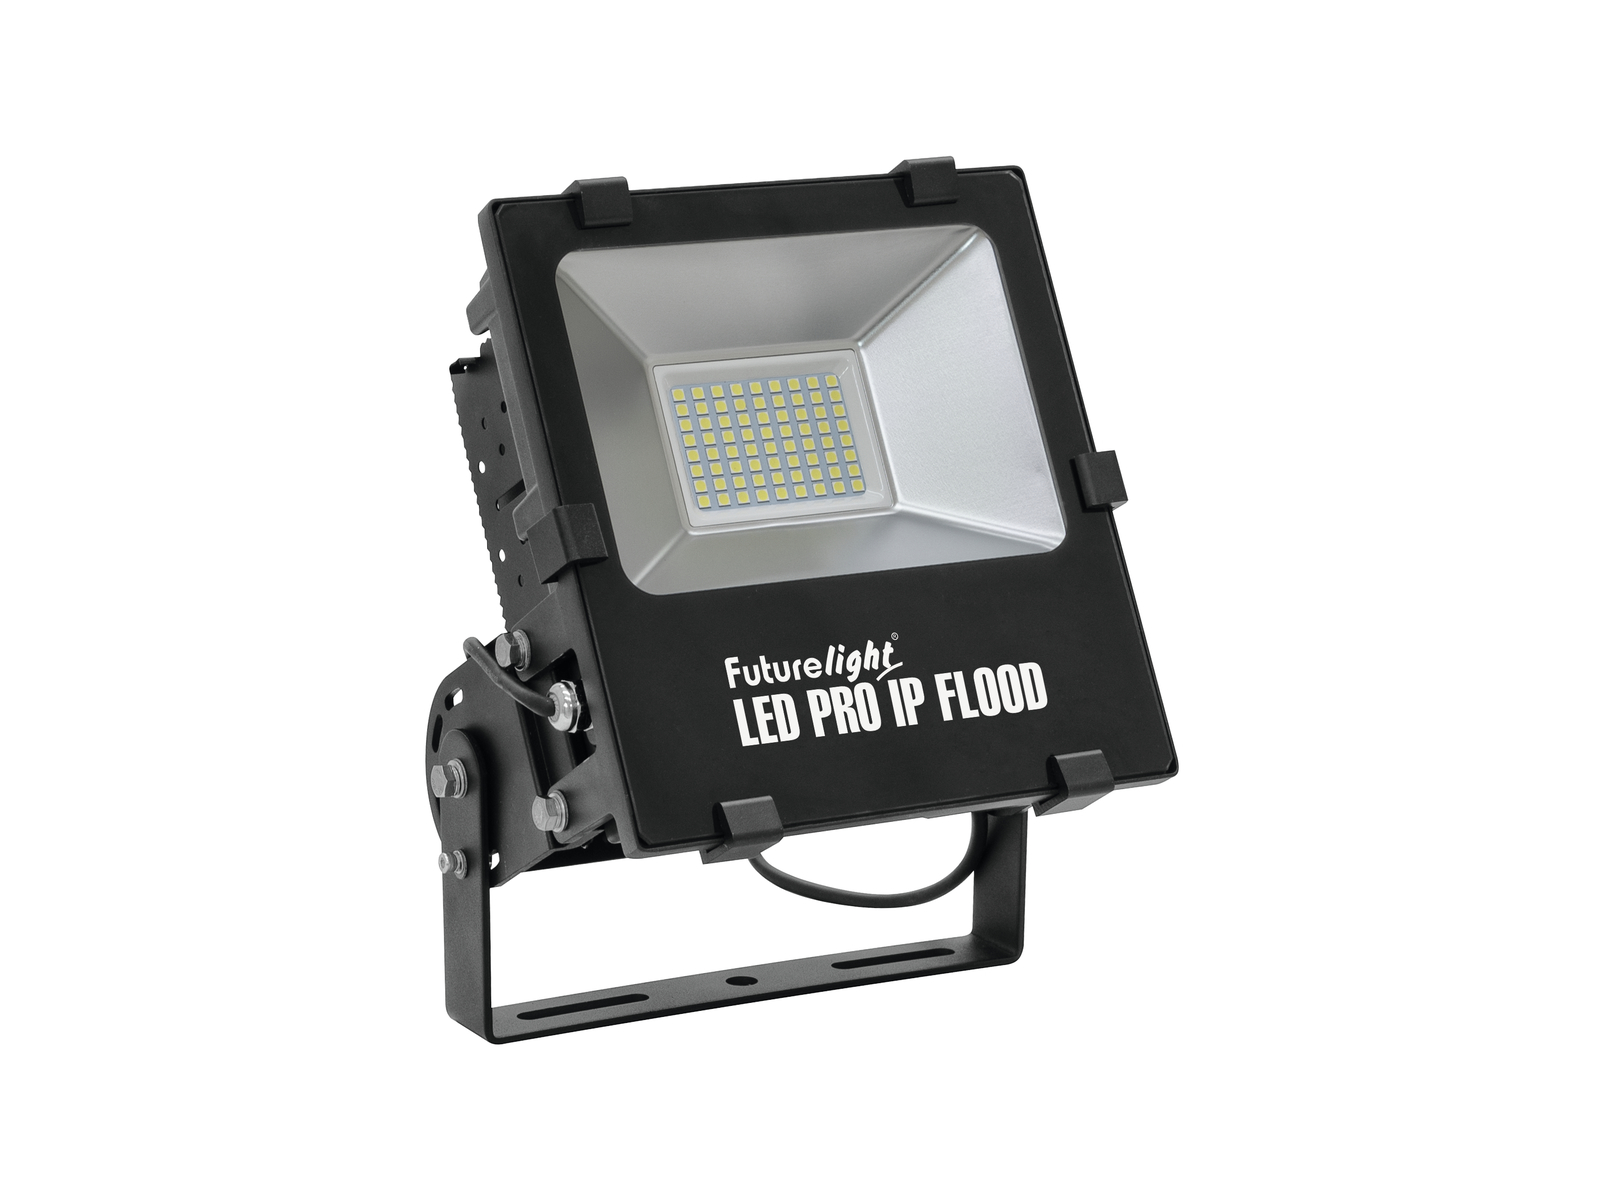 FUTURELIGHT LED PRO IP di Inondazione 72